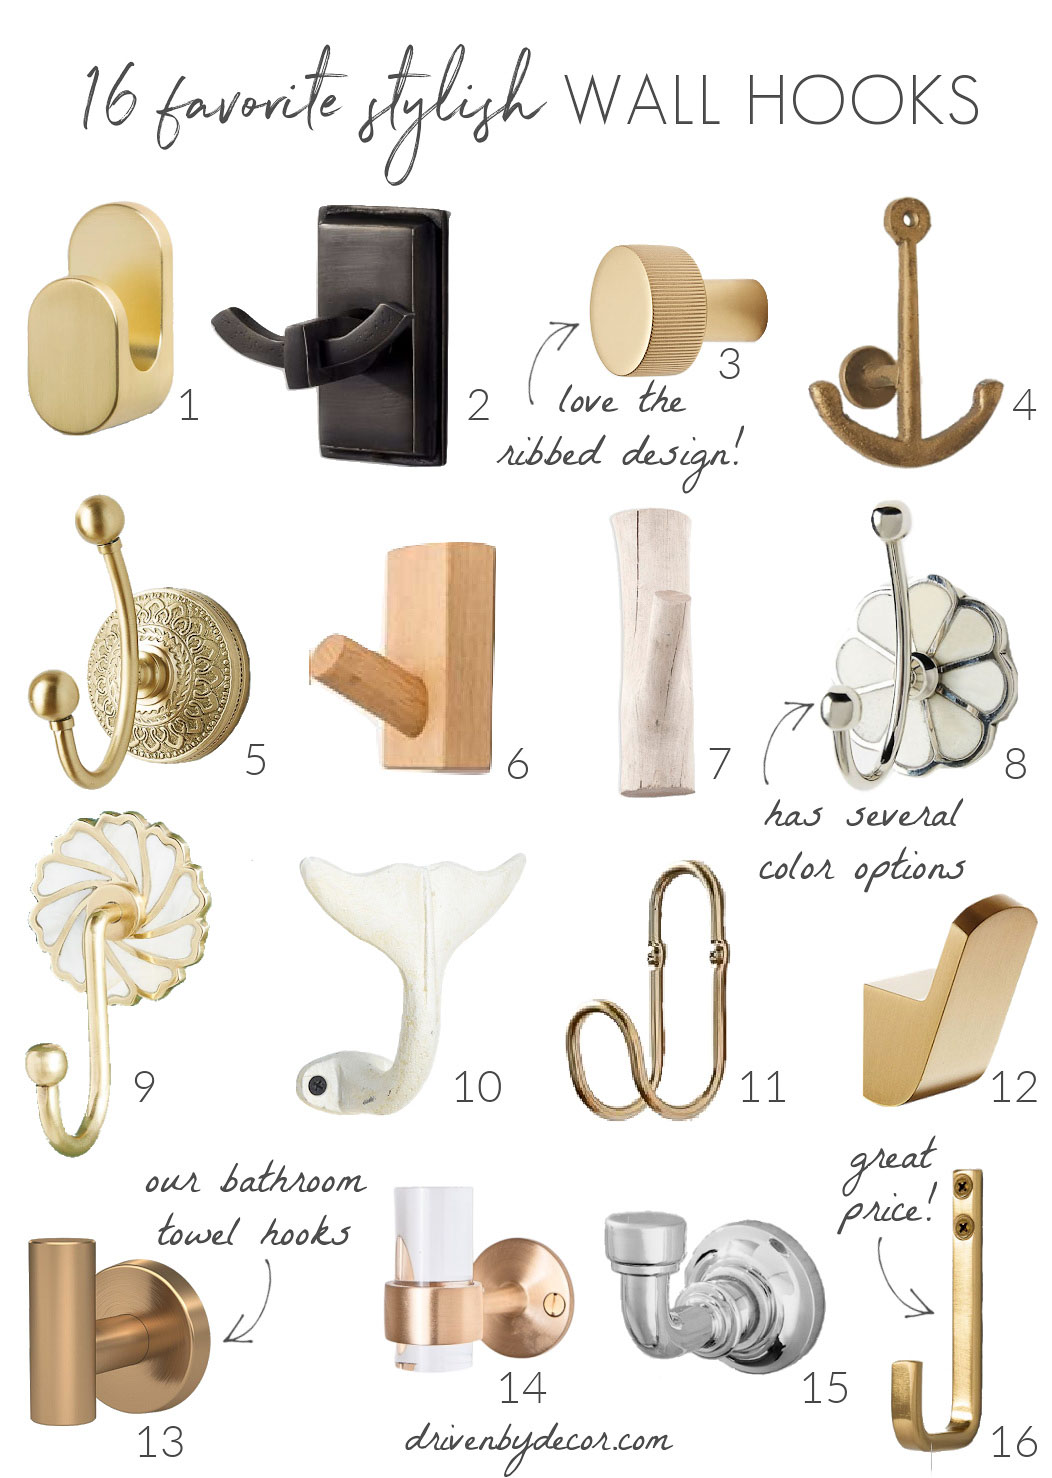 Love these decorative wall hooks!